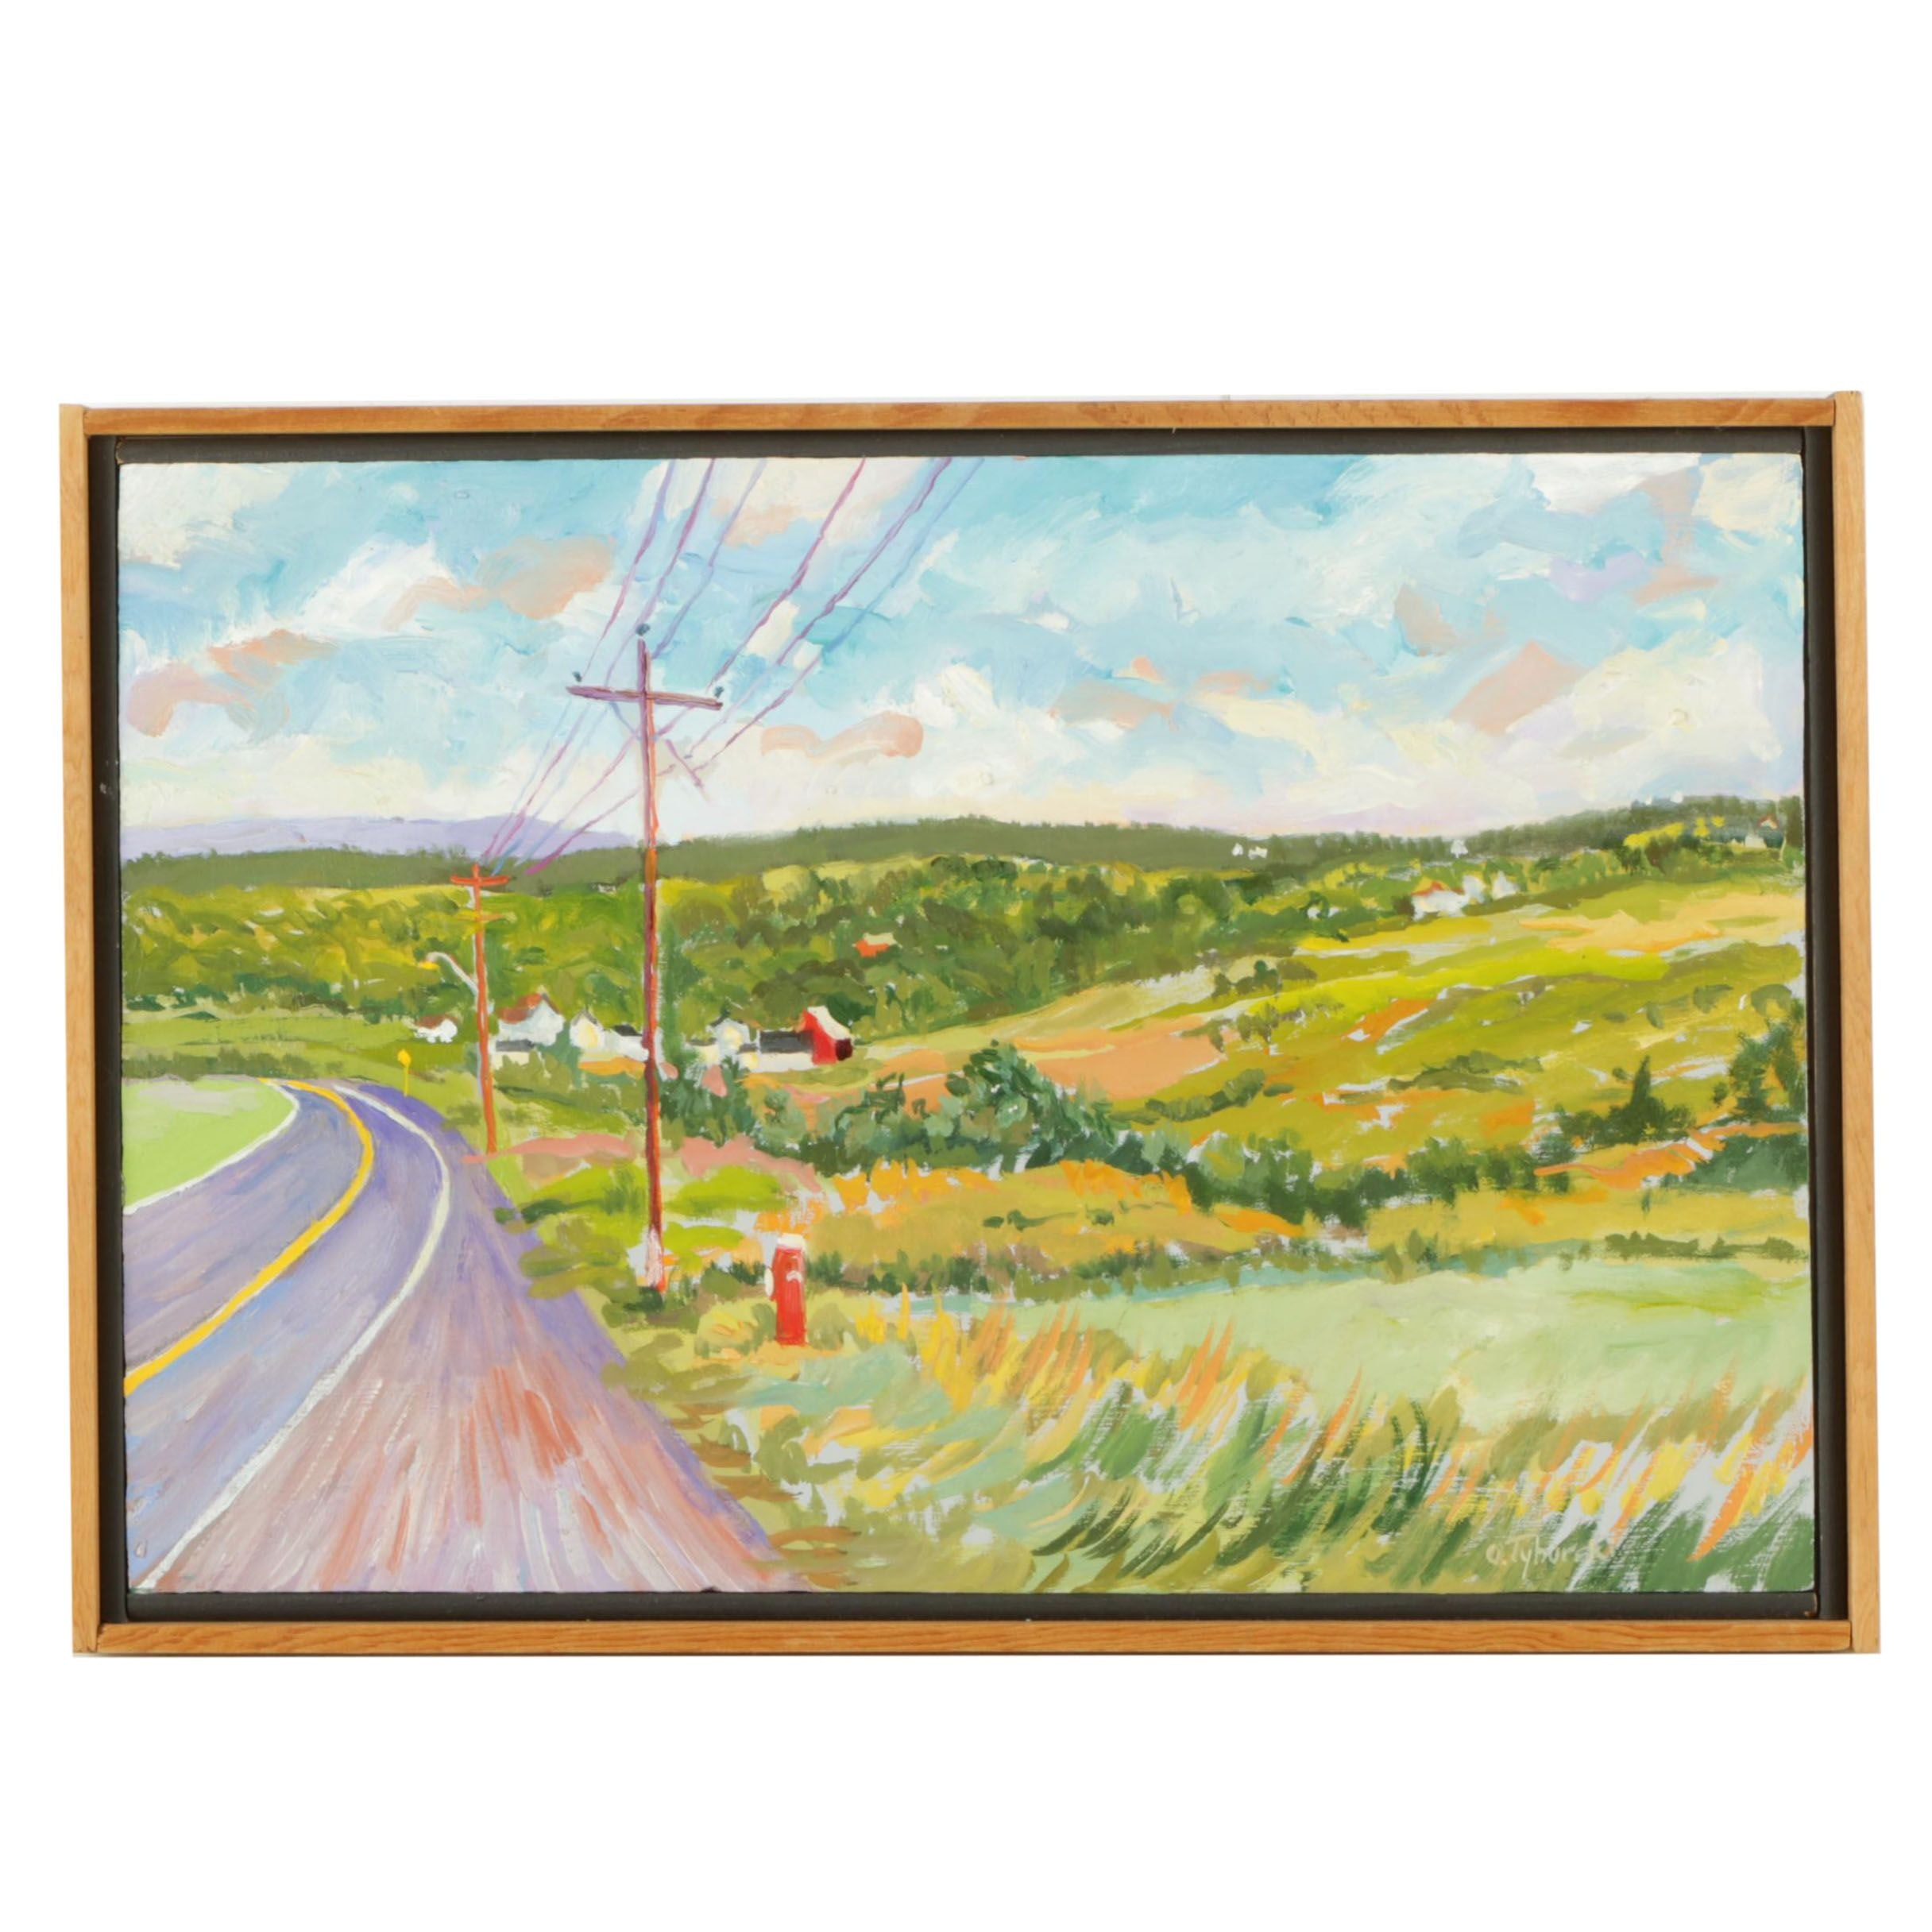 "O. Tyborski Oil Painting on Board ""On The Road Again"""